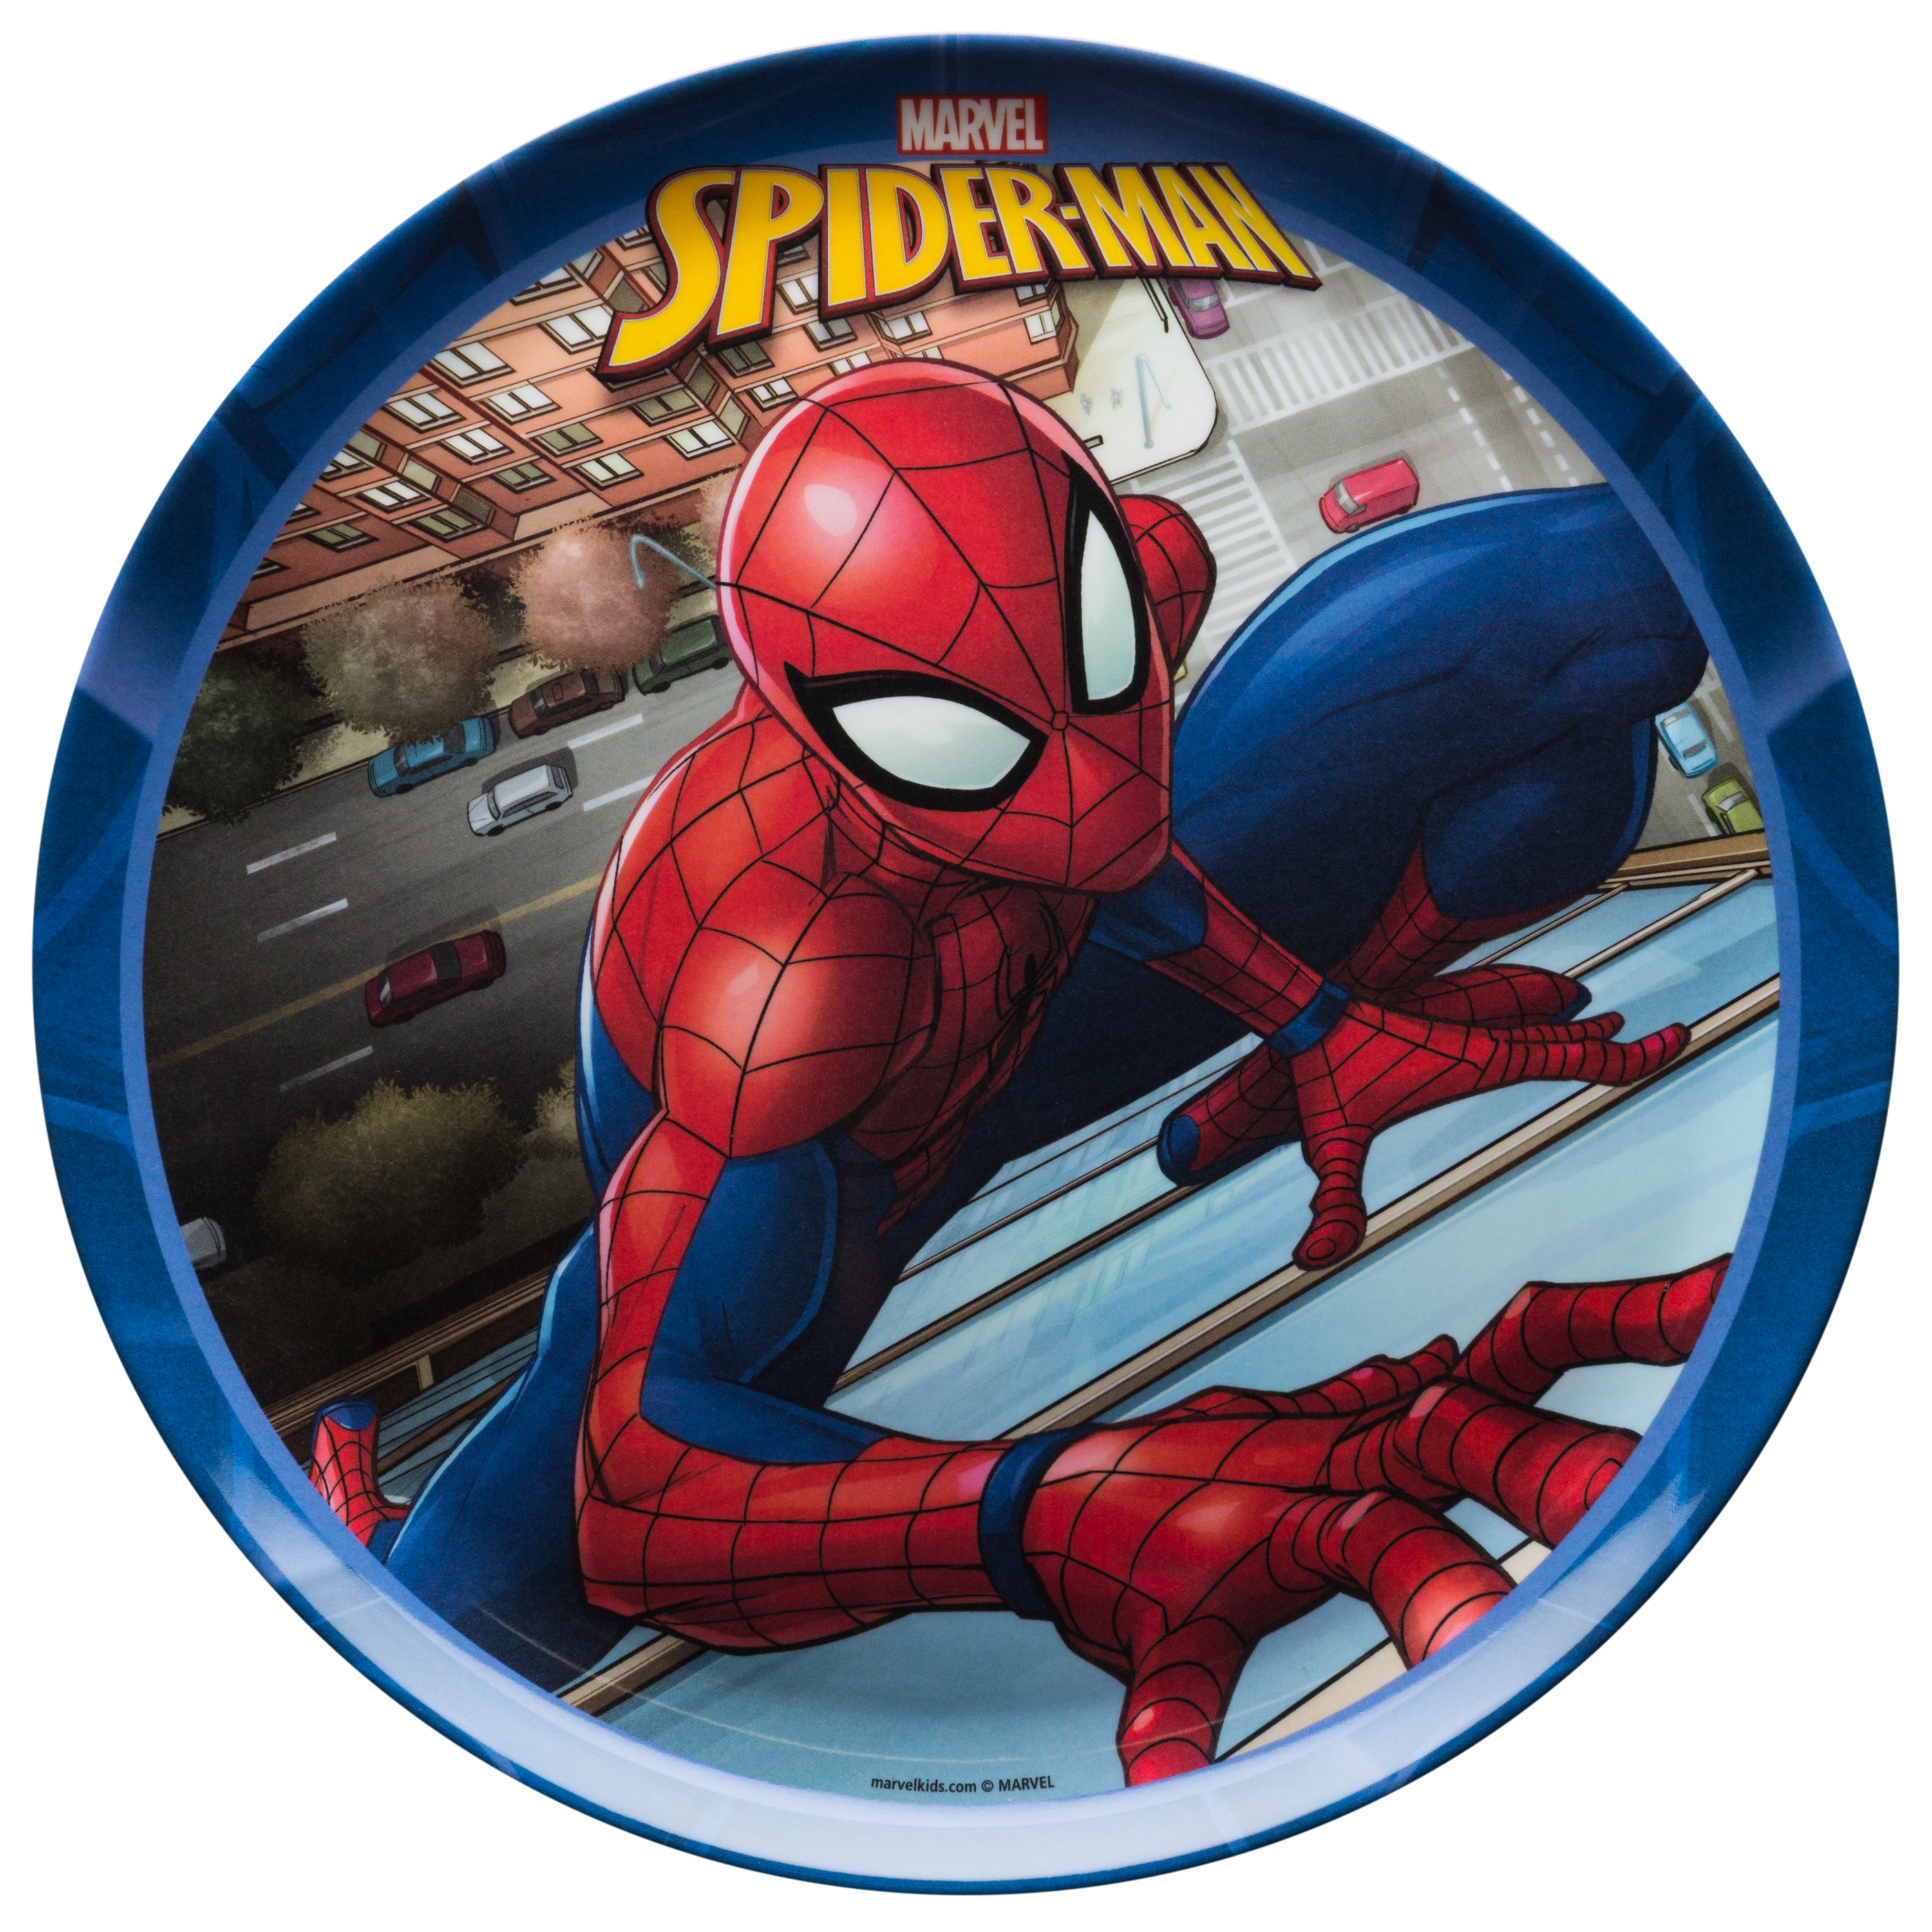 Marvel Comics Dinnerware Set, Spider-Man, 2-piece set slideshow image 3